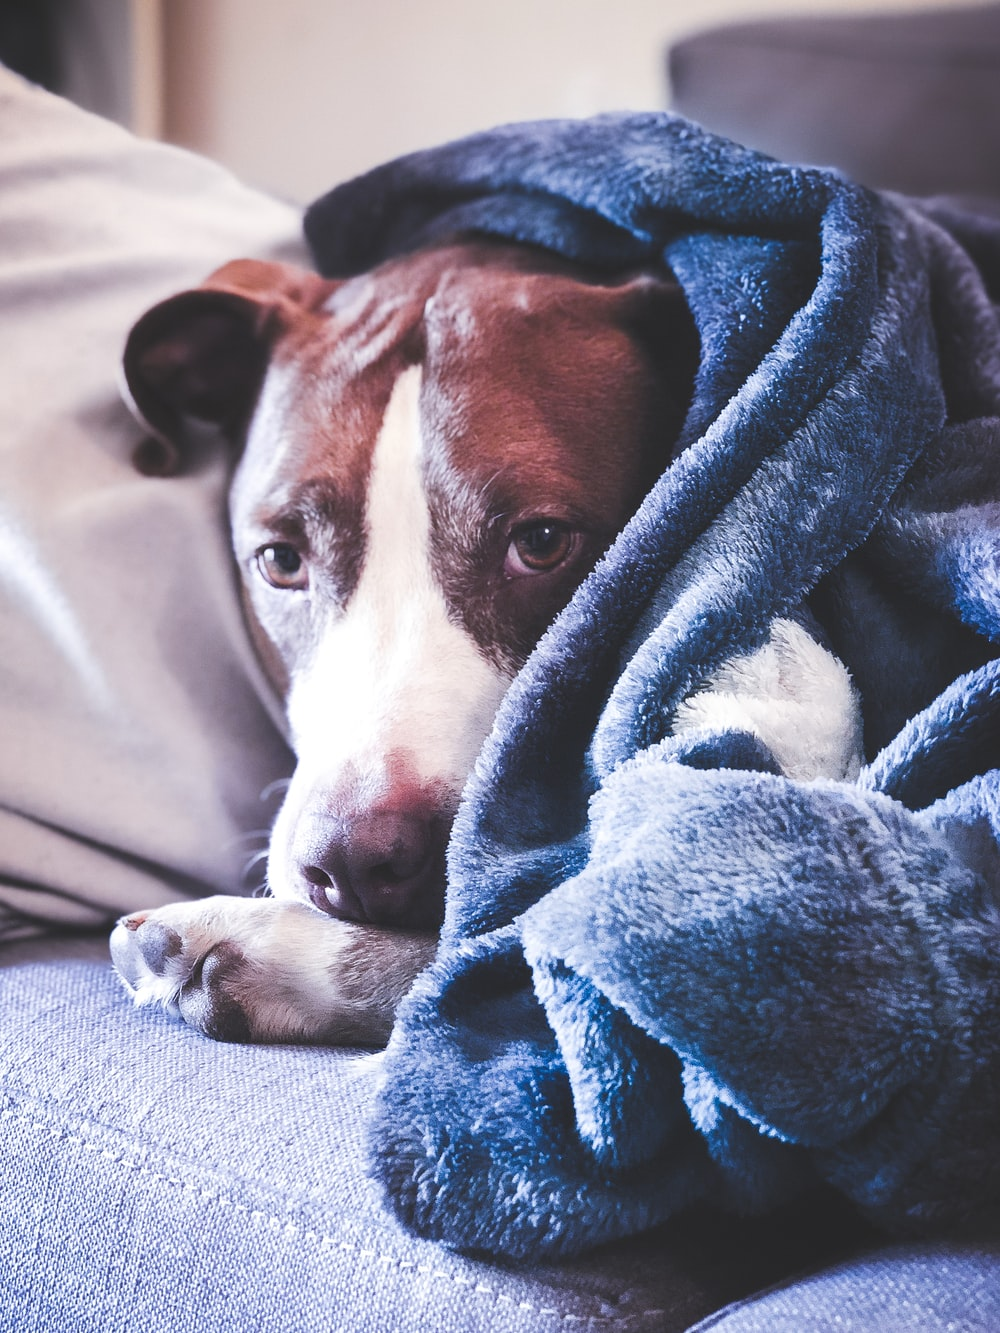 brown and white short coated dog covered with blue blanket